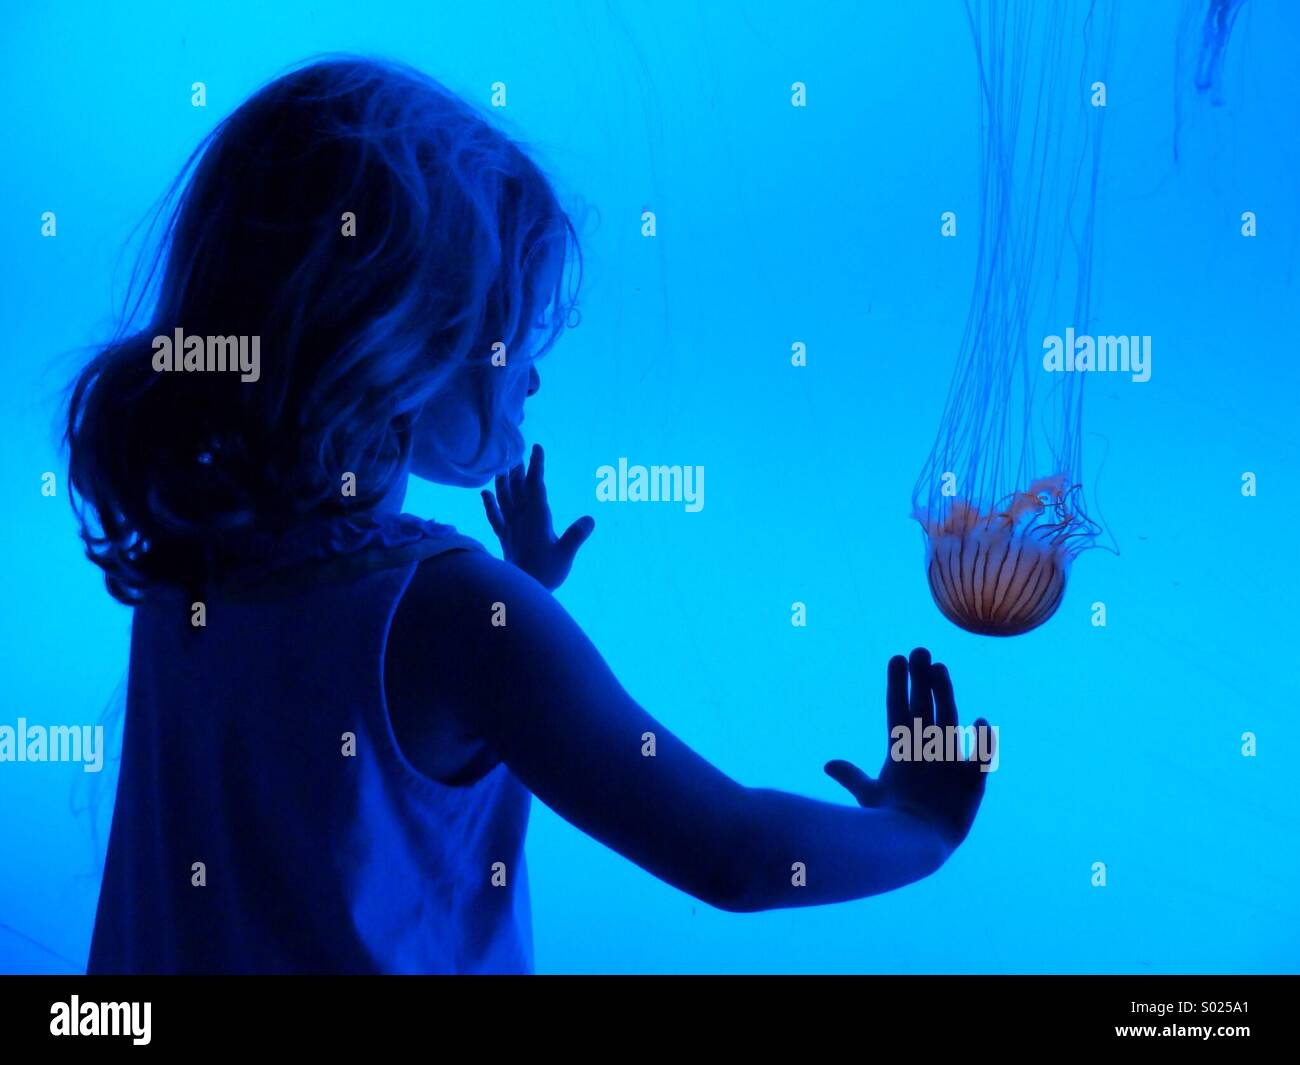 Under blue view - Stock Image